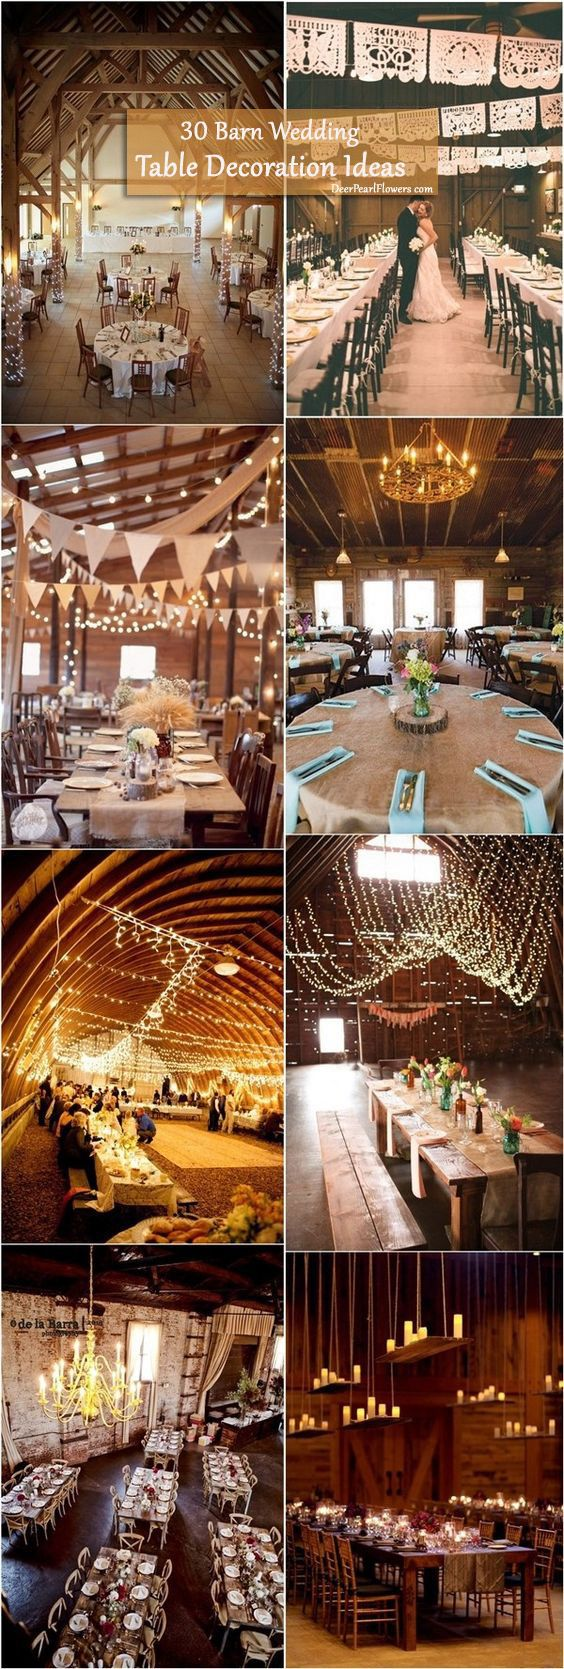 30 Barn Wedding Reception Table Decoration Ideas / http://www.deerpearlflowers.com/barn-wedding-reception-table-decoration/